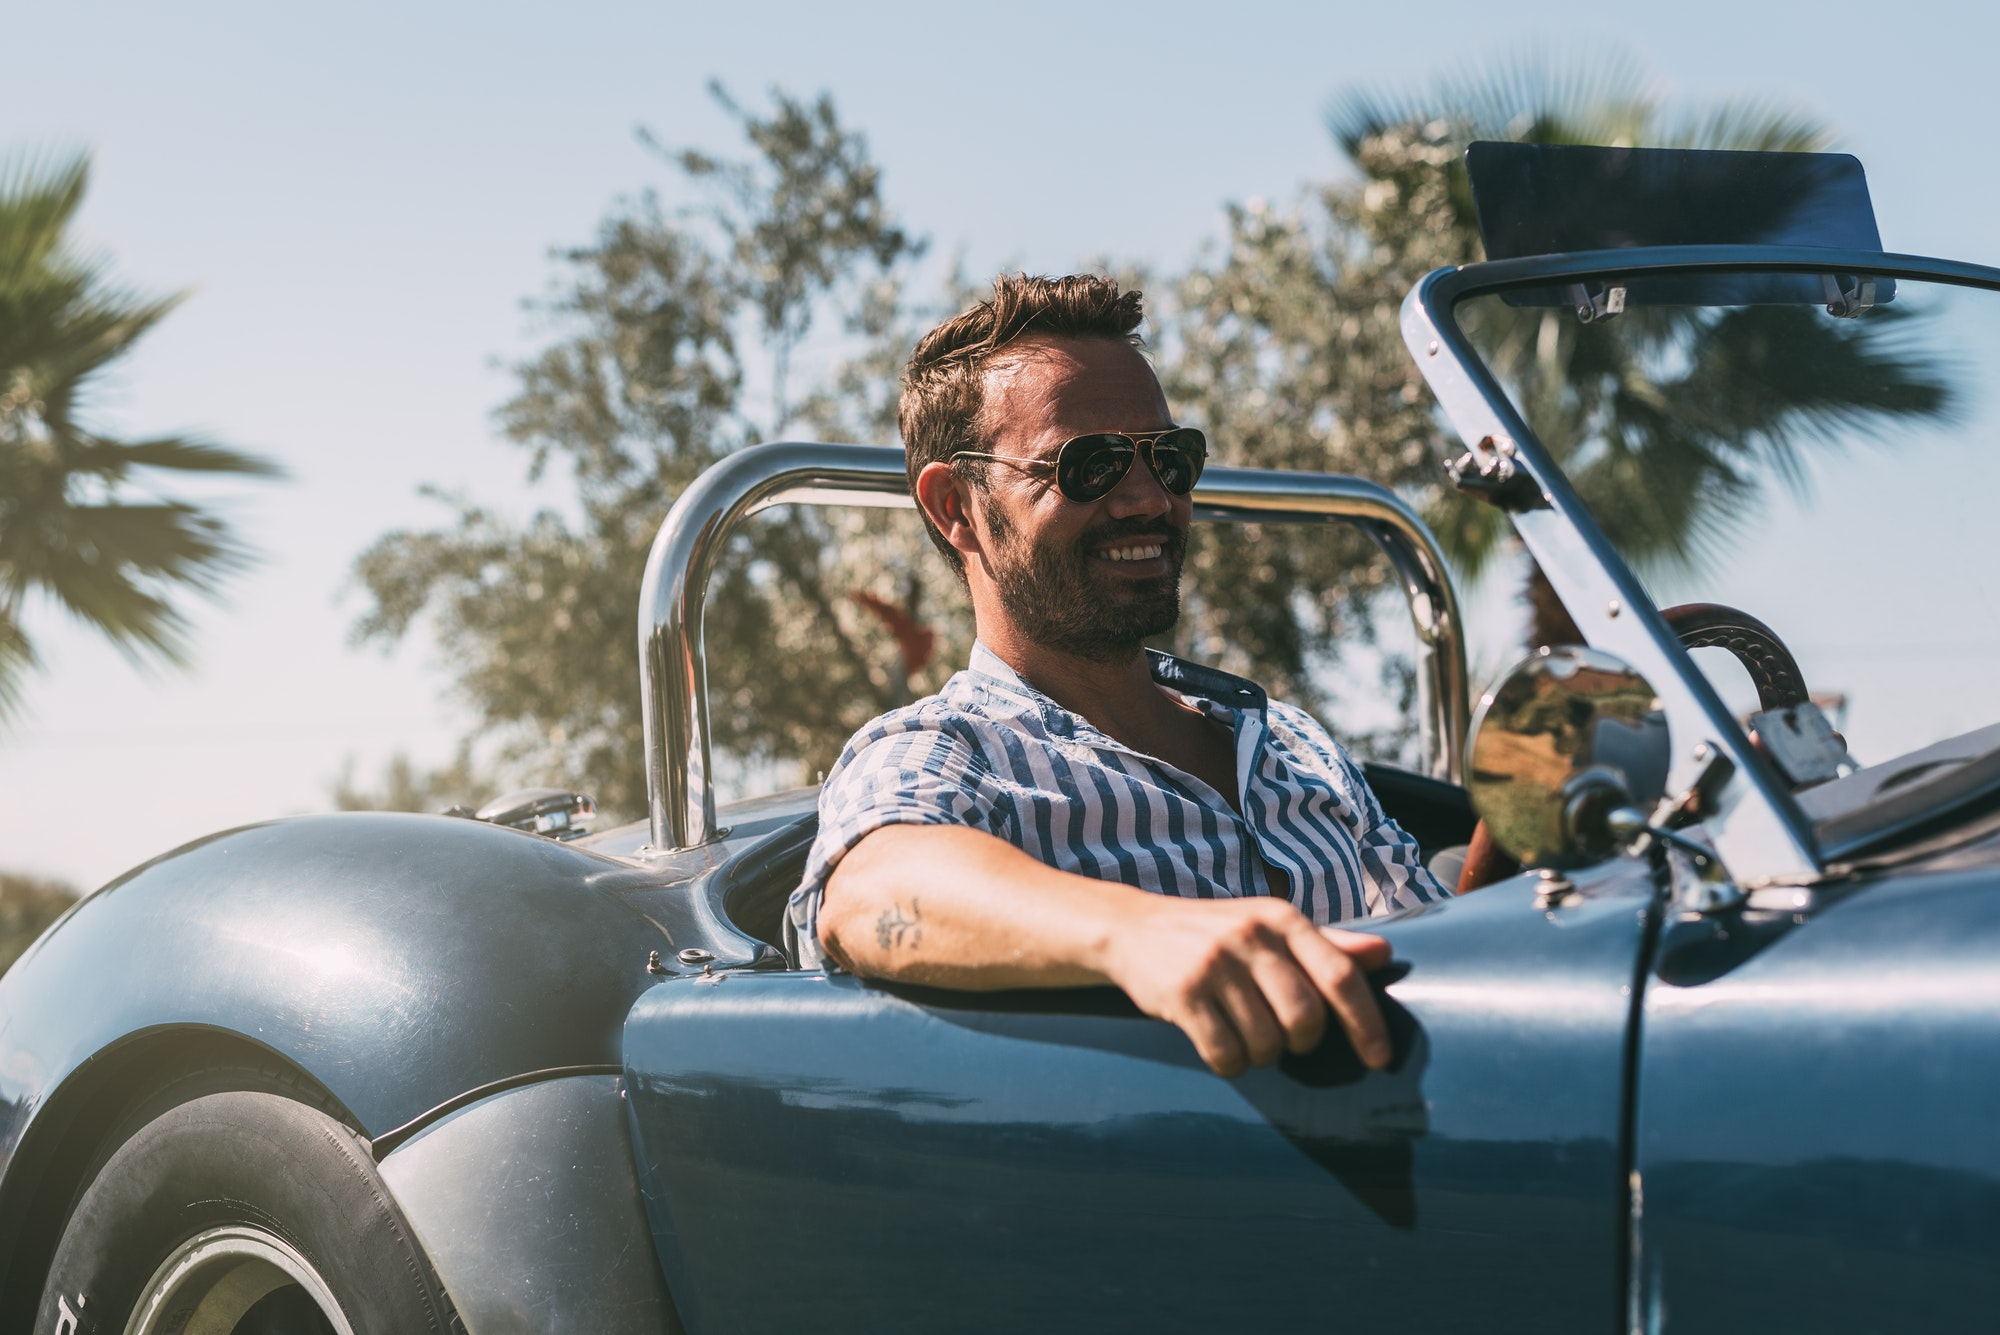 Man driving a convertible vintage car